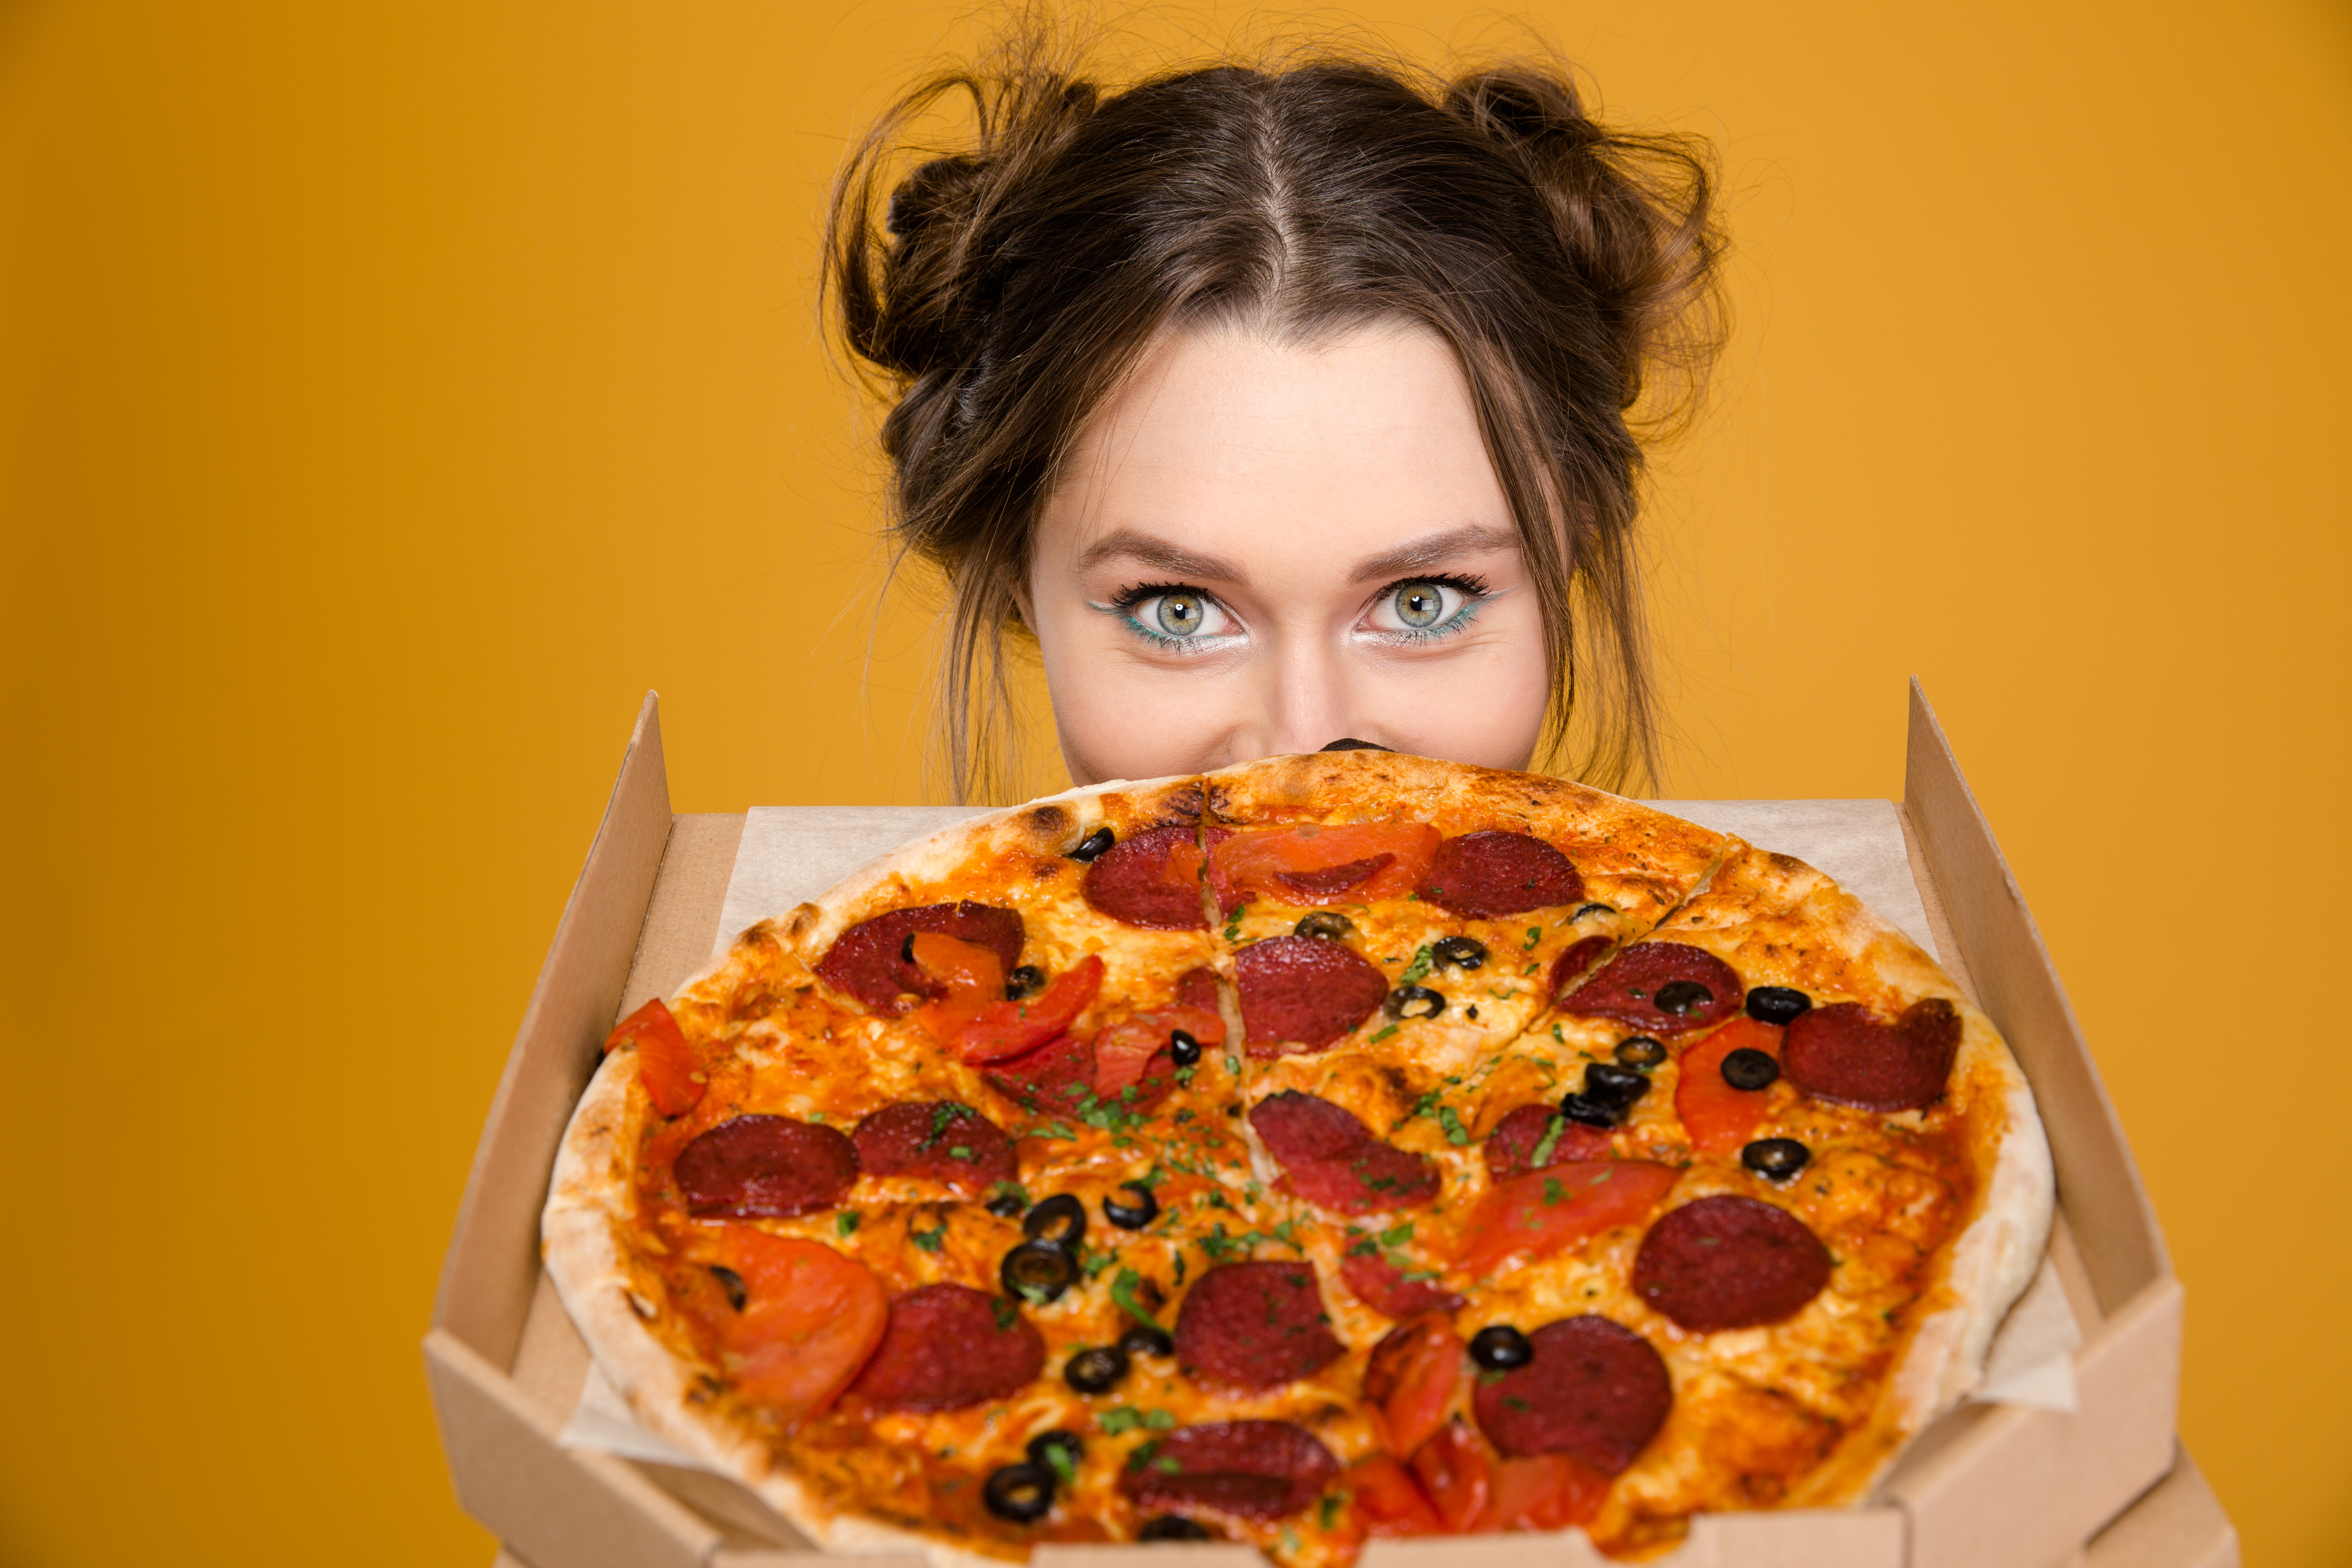 It's National Pizza Day so here are our top tips...